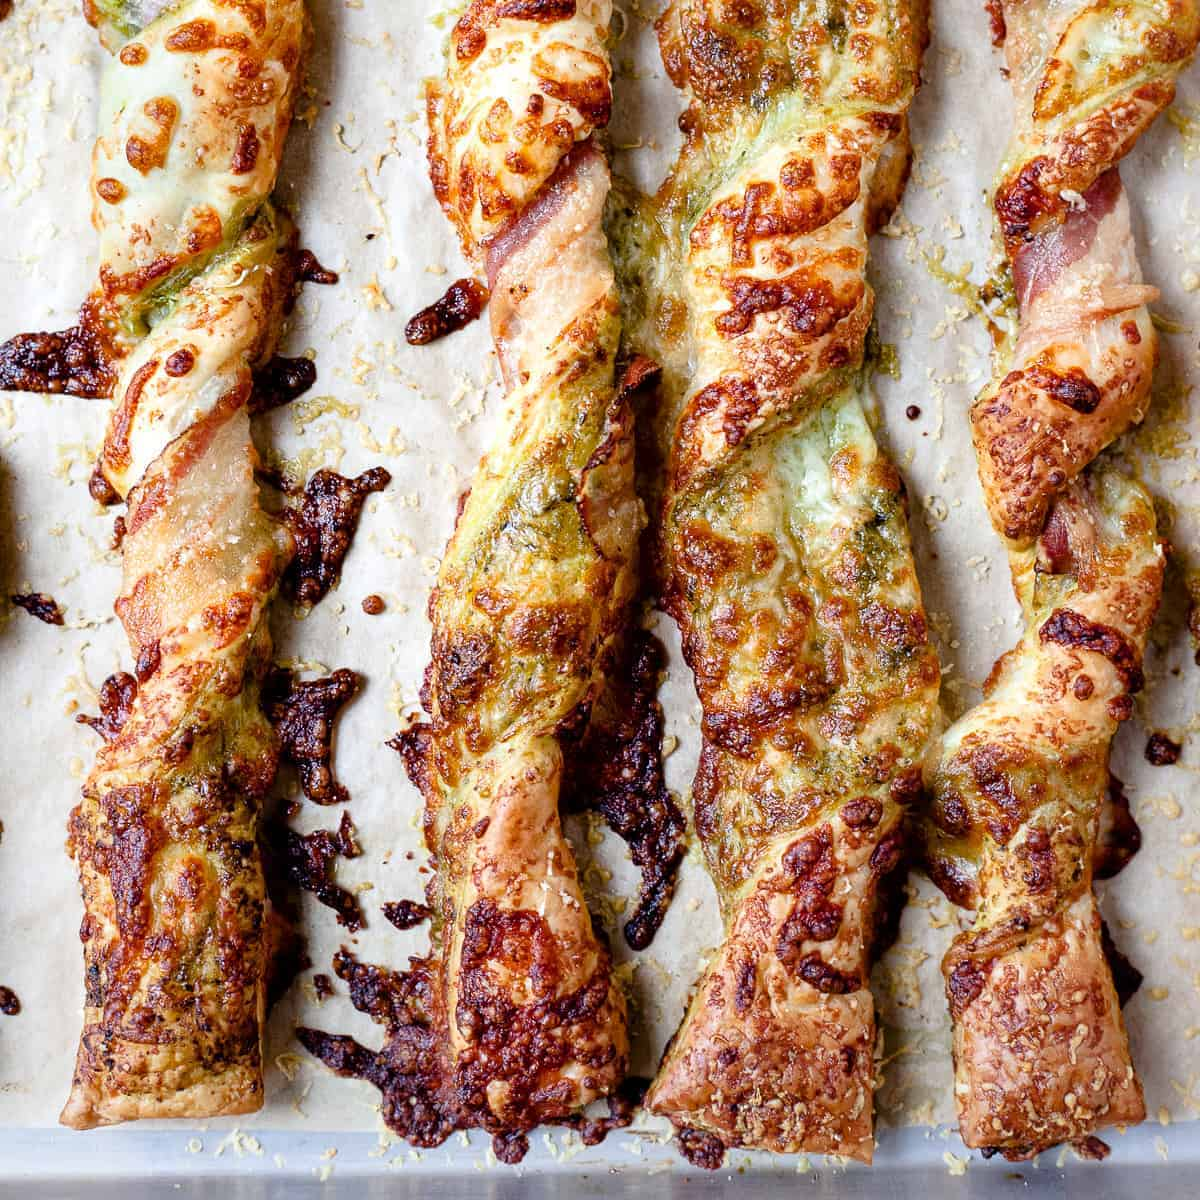 Cheese straws made using puff pastry and pesto. All ingredients from Aldi.